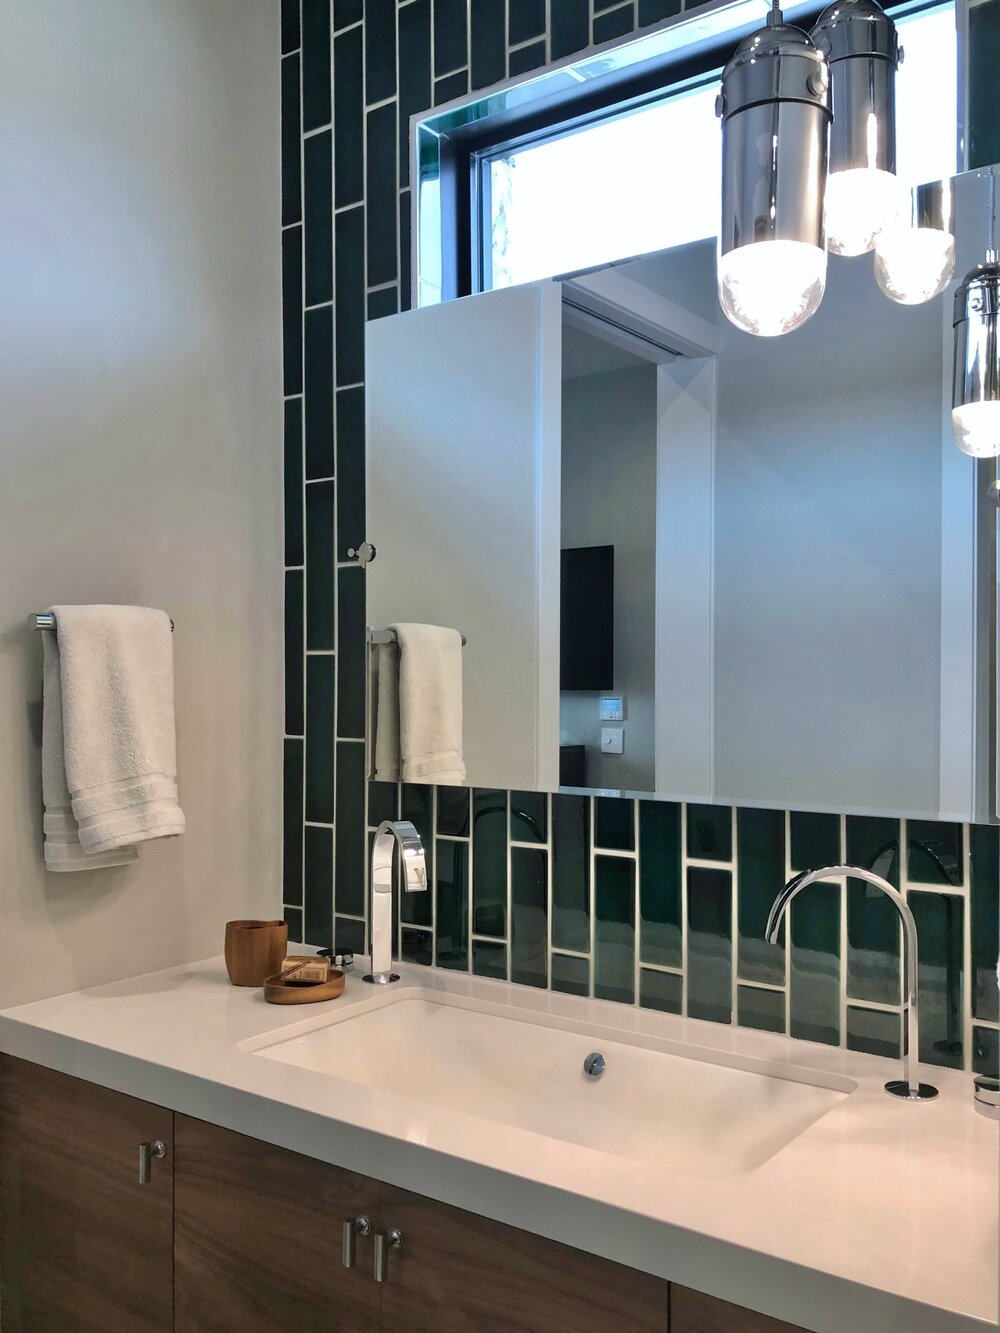 One extra wide sink with two faucets for dual use in a small vanity. The New American Remodel TNAR | #remodeling #remodel #bathroomdesign